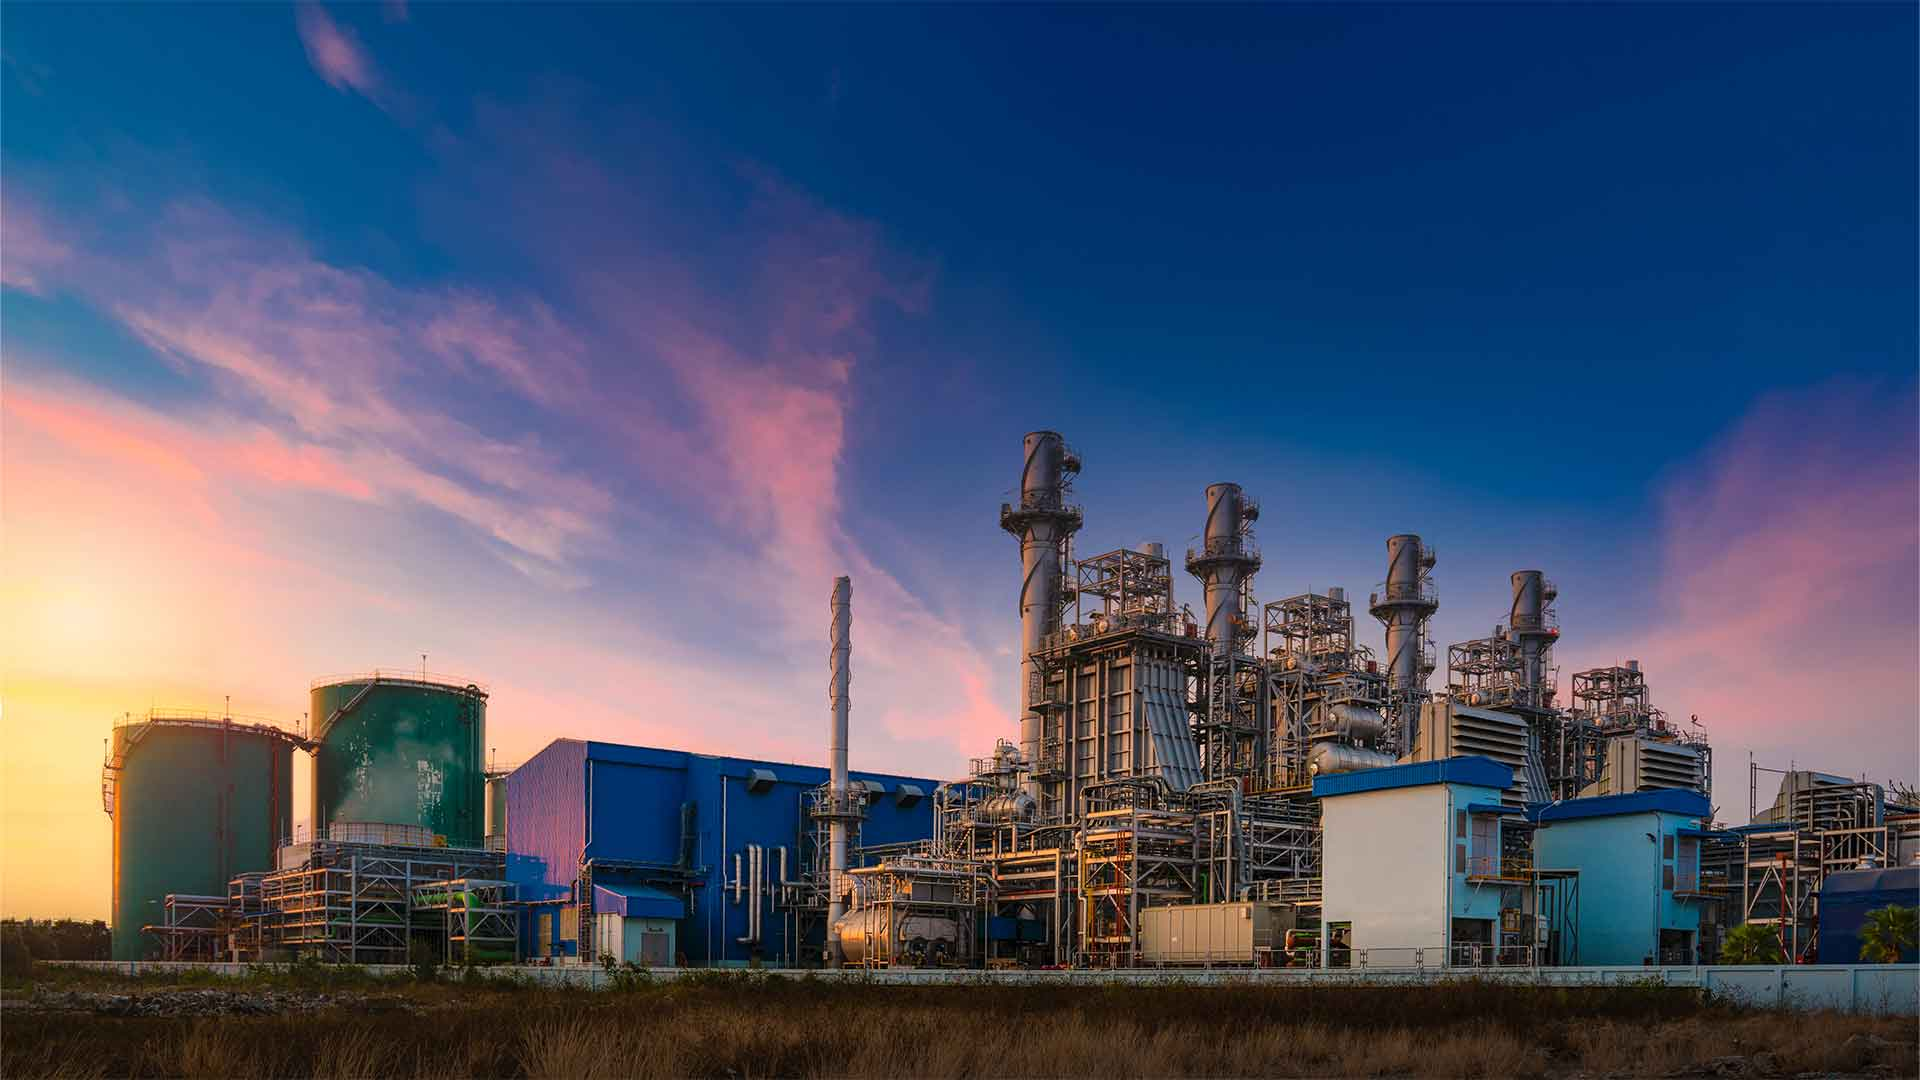 Boron Spurs Excitement in Oil and Gas